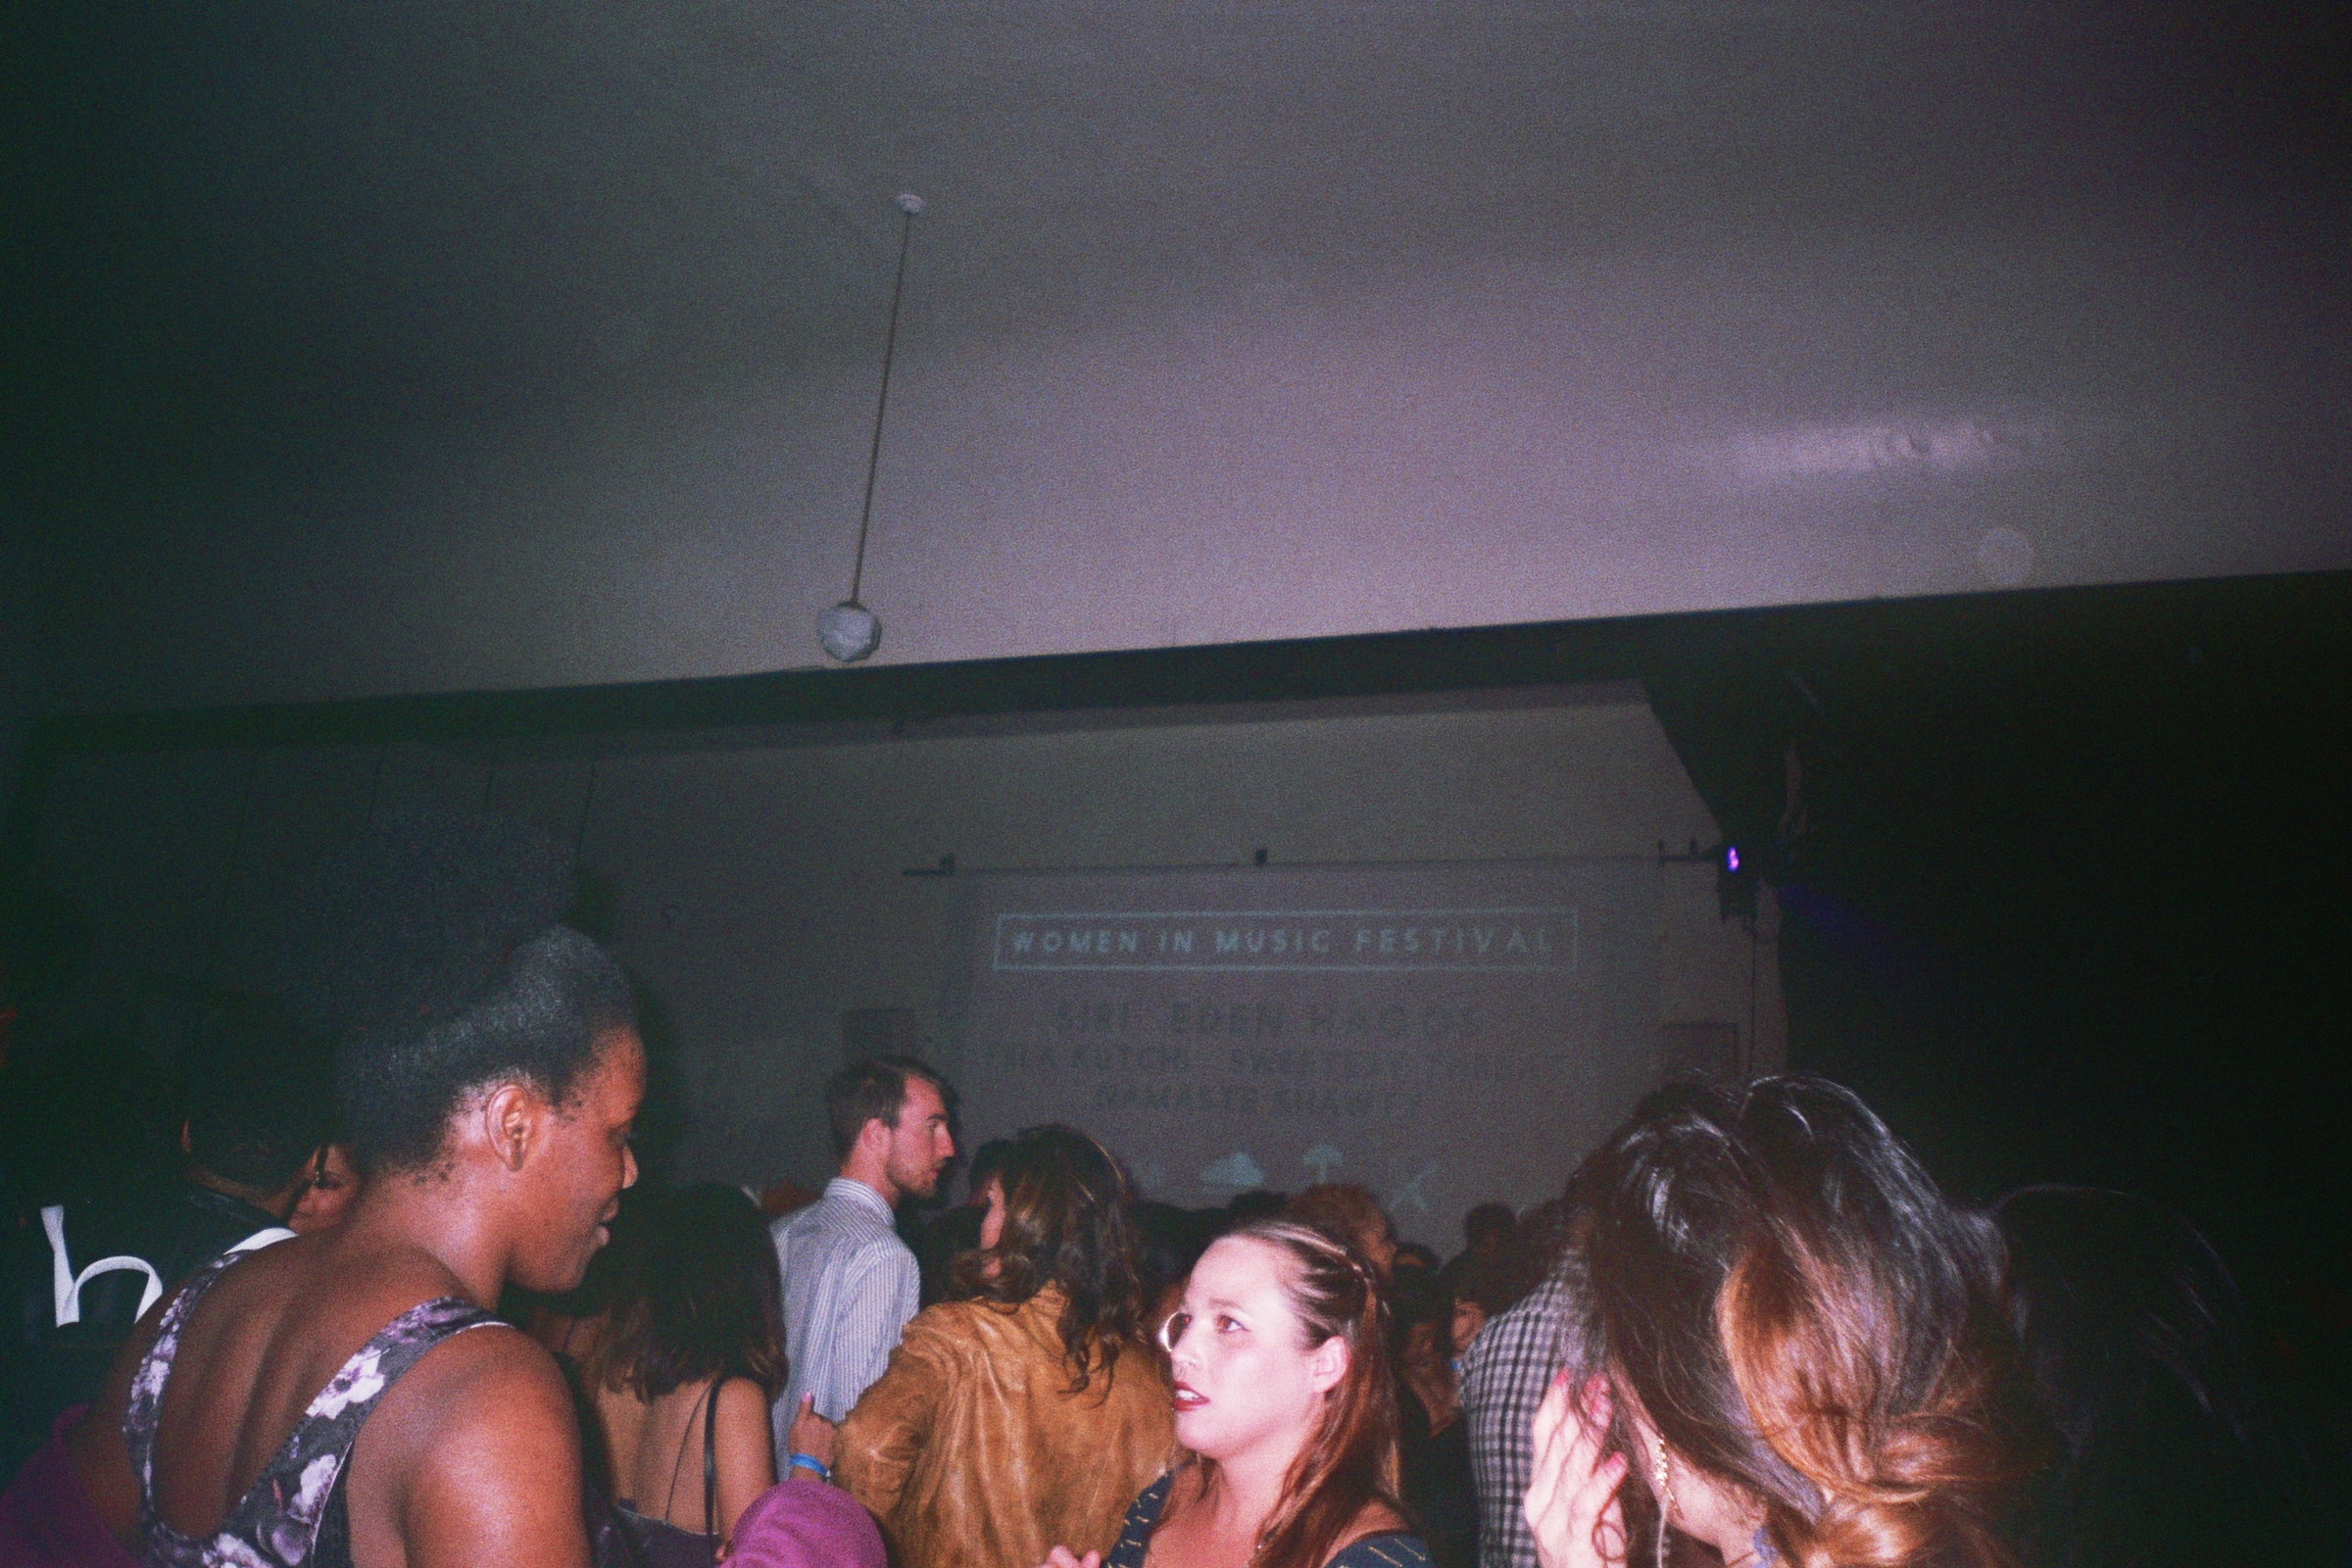 Closing party at the Starline Social Club in Oakland.